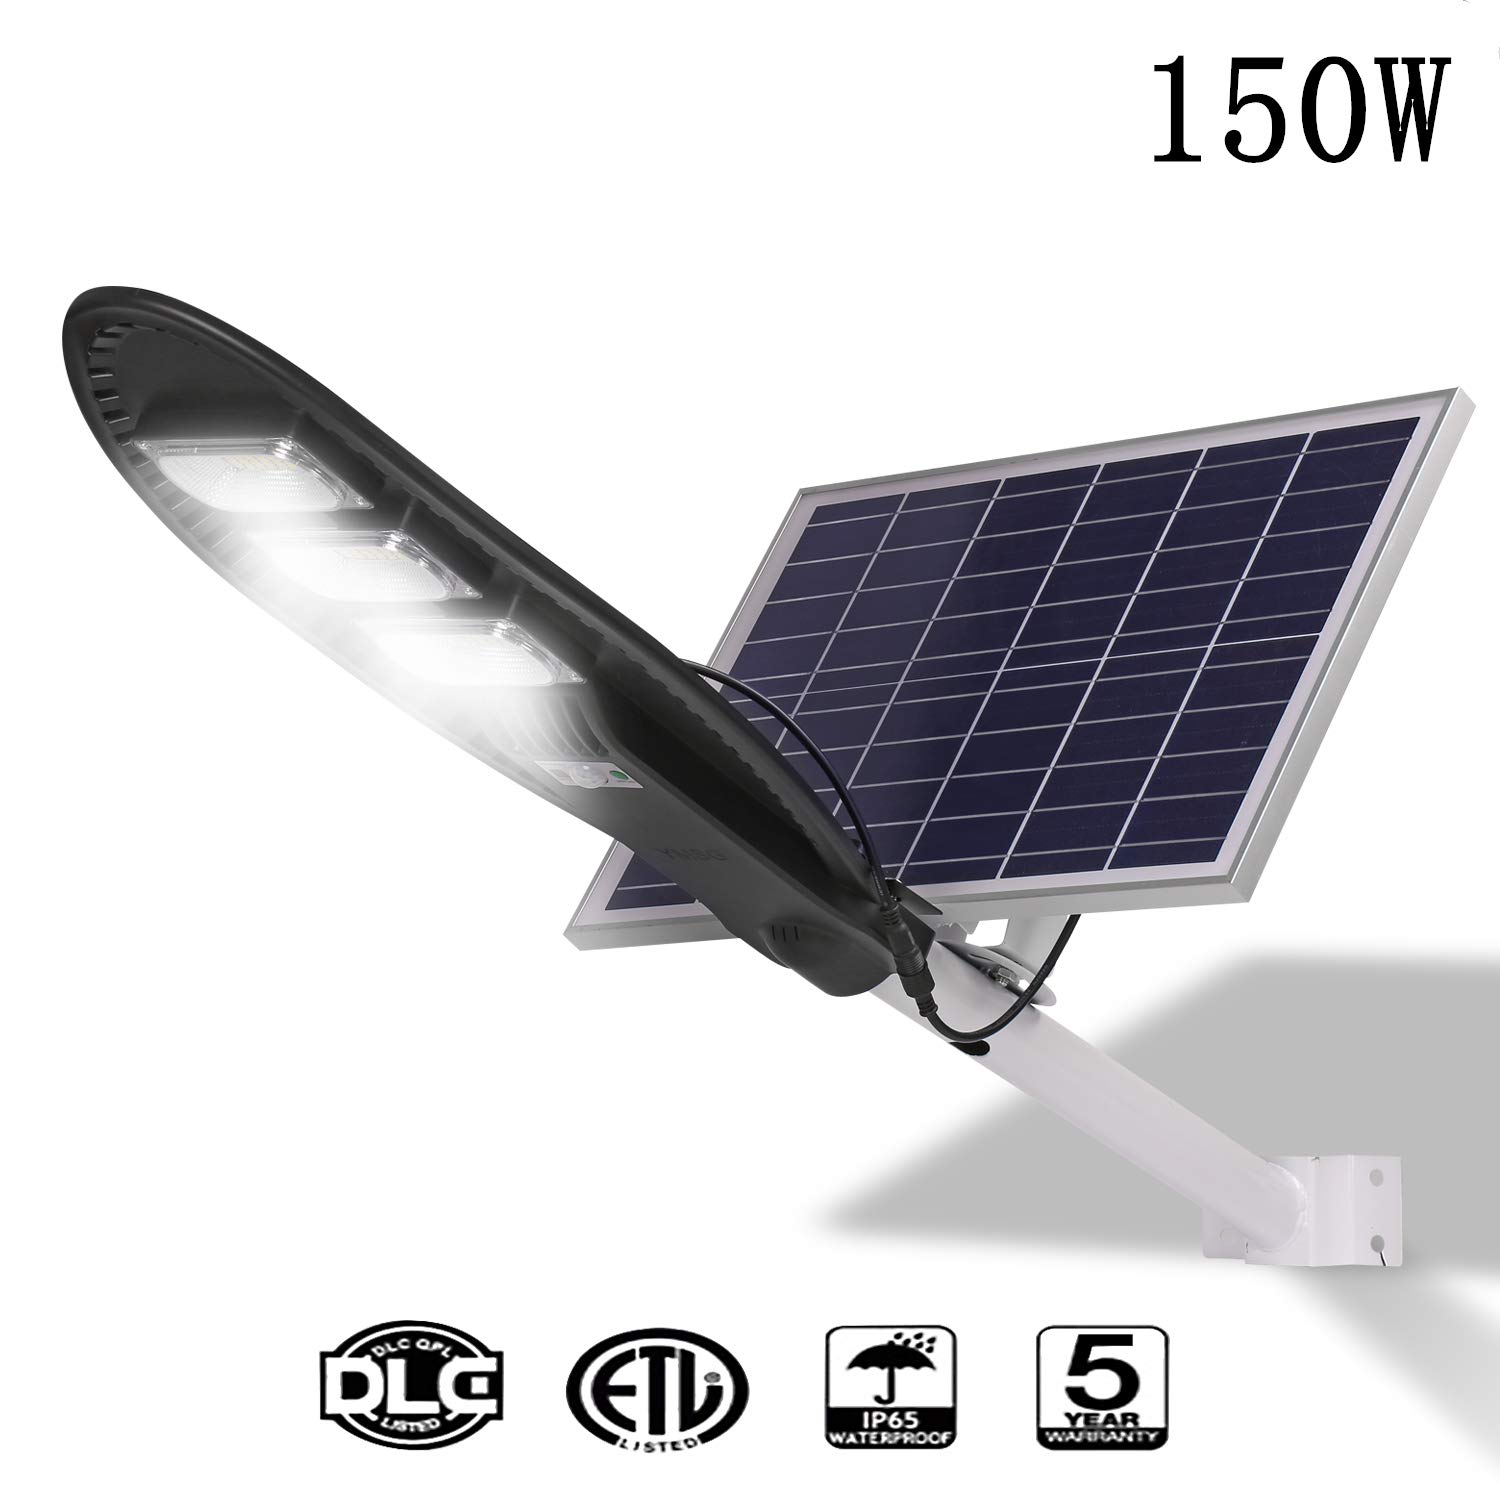 150W Solar Street Lights Outdoor Lamp,8000 lumens with Remote Control,Light Control, Human Body Induction, Dusk to Dawn Security Led Flood Light for Yard, Garden, Street, Basketball Court